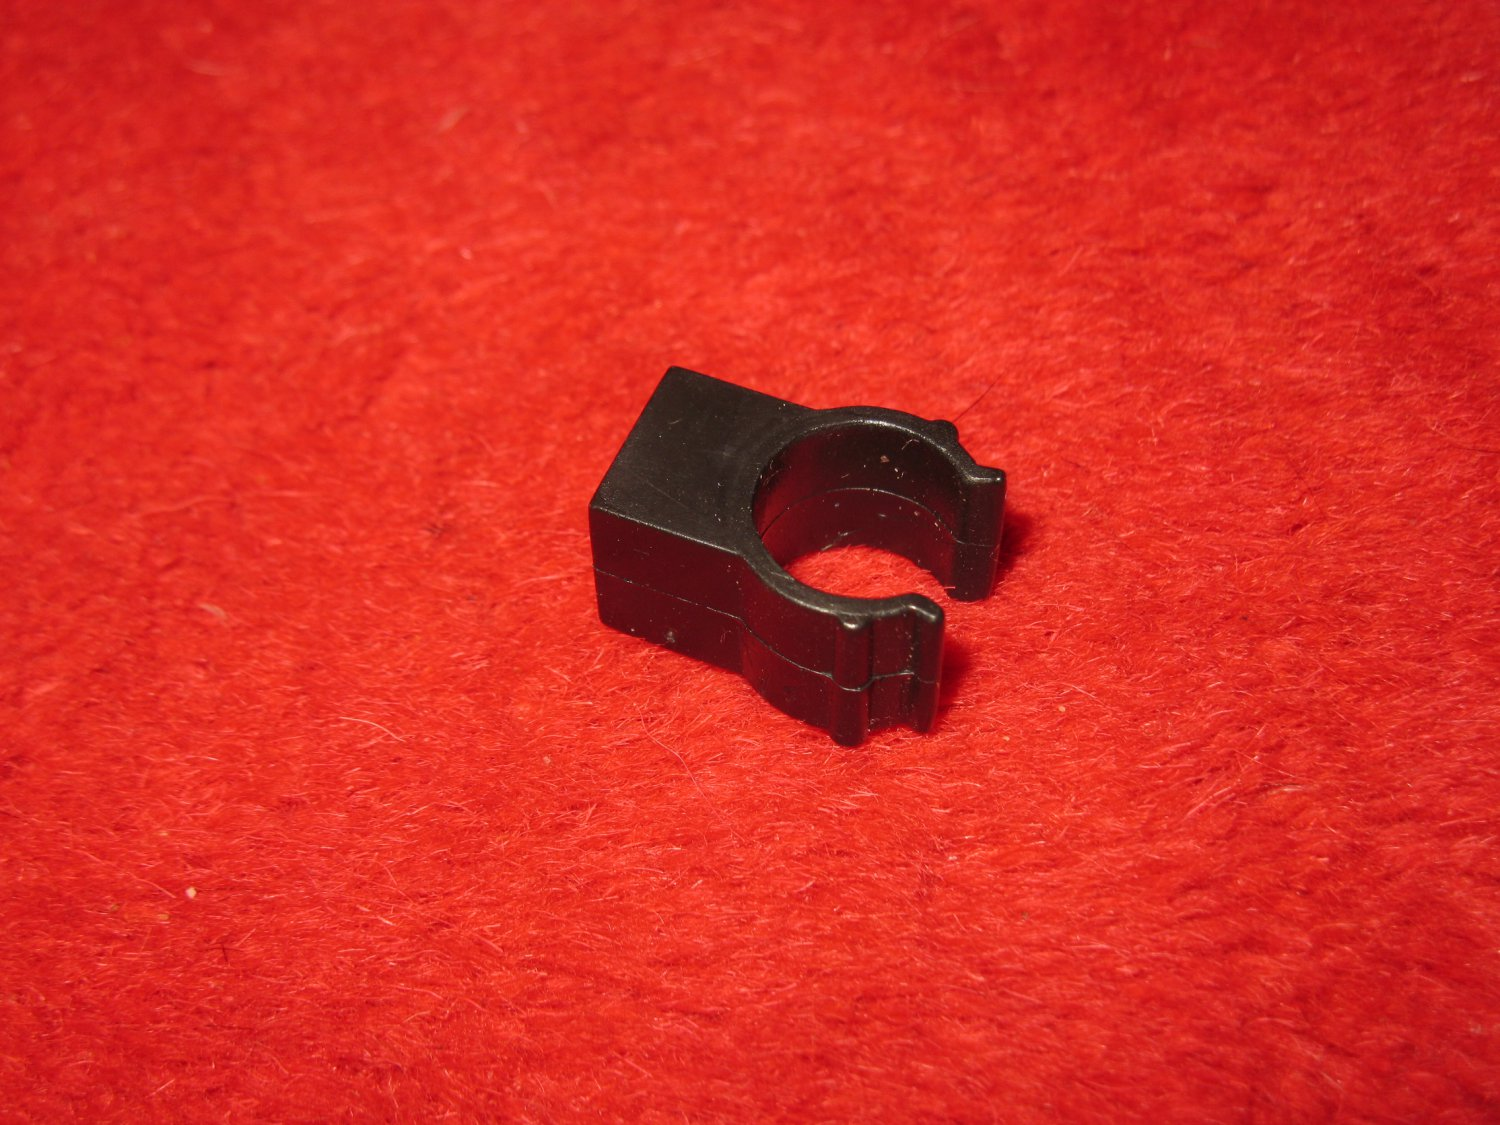 Fisher Price: Construx Action Building System Part- Black Wheel Hub Clamp